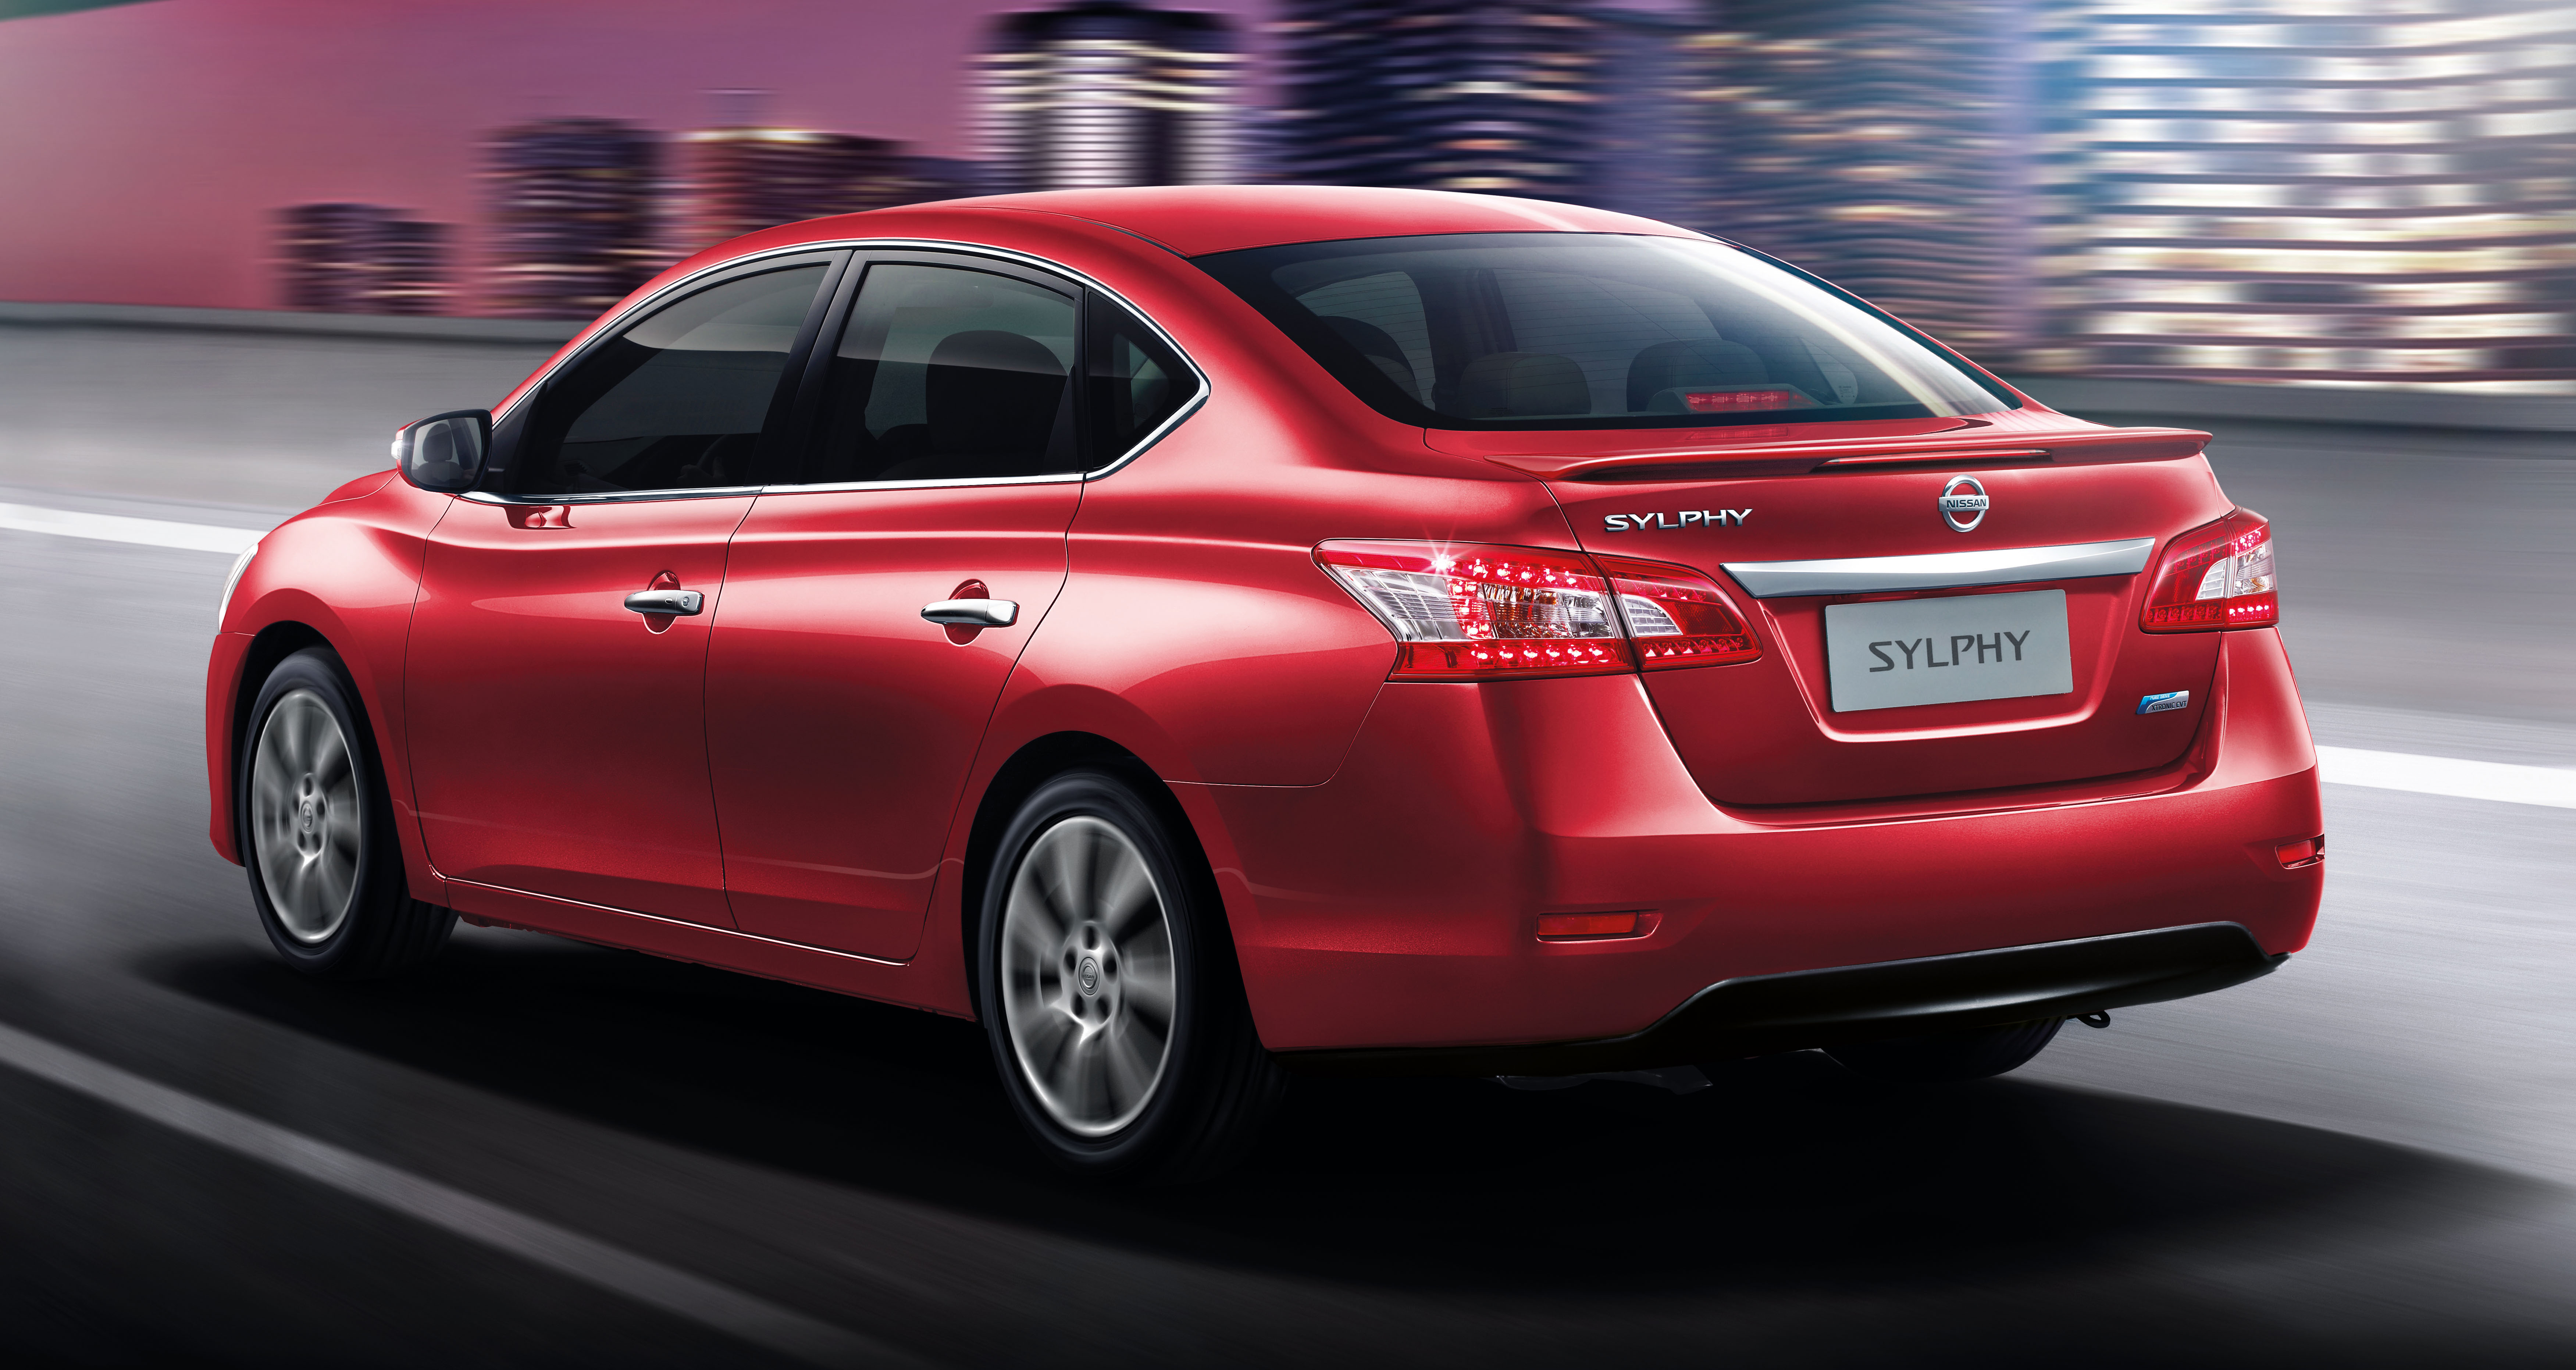 2018 Nissan Sylphy >> New Nissan Sylphy open for booking in Malaysia! Image 242242